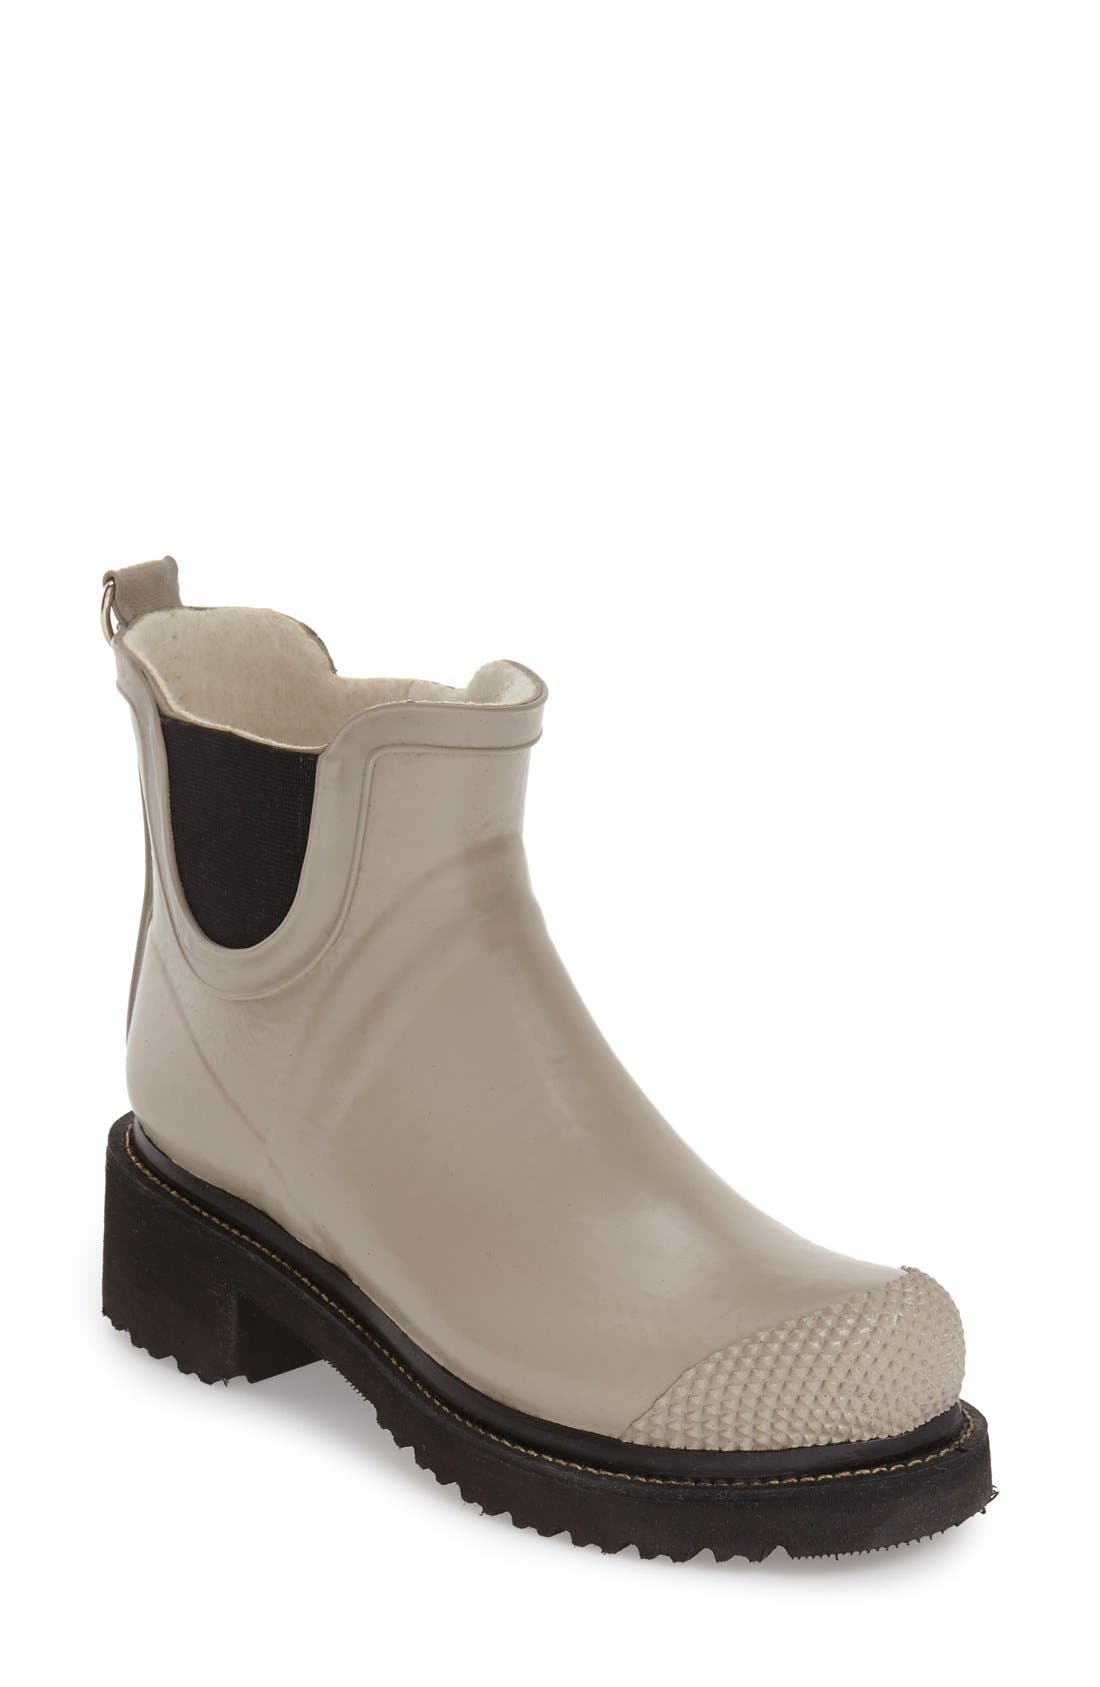 Ilse Jacobsen Hornbaek 'RUB 47' Short Waterproof Rain Boot (Women)